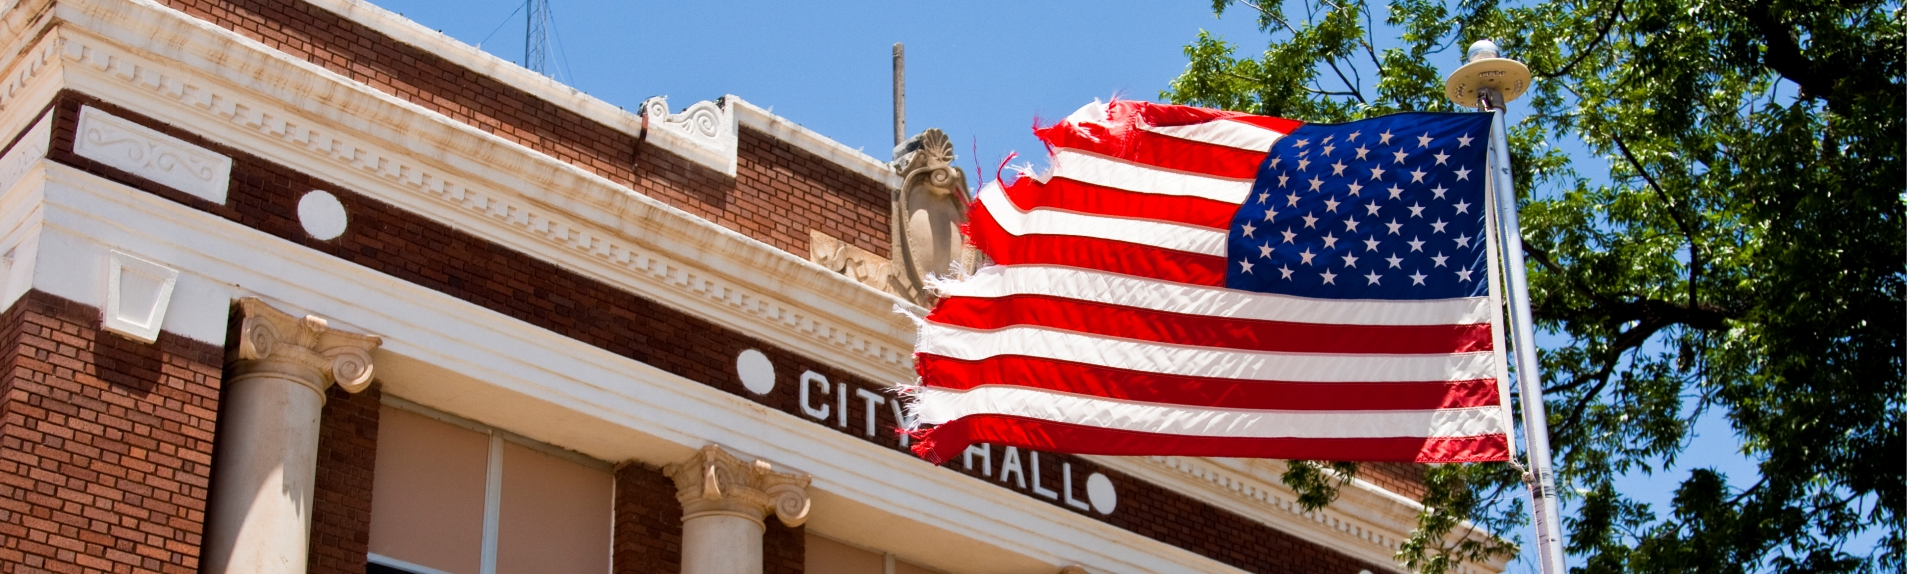 American flag displayed outside a city hall